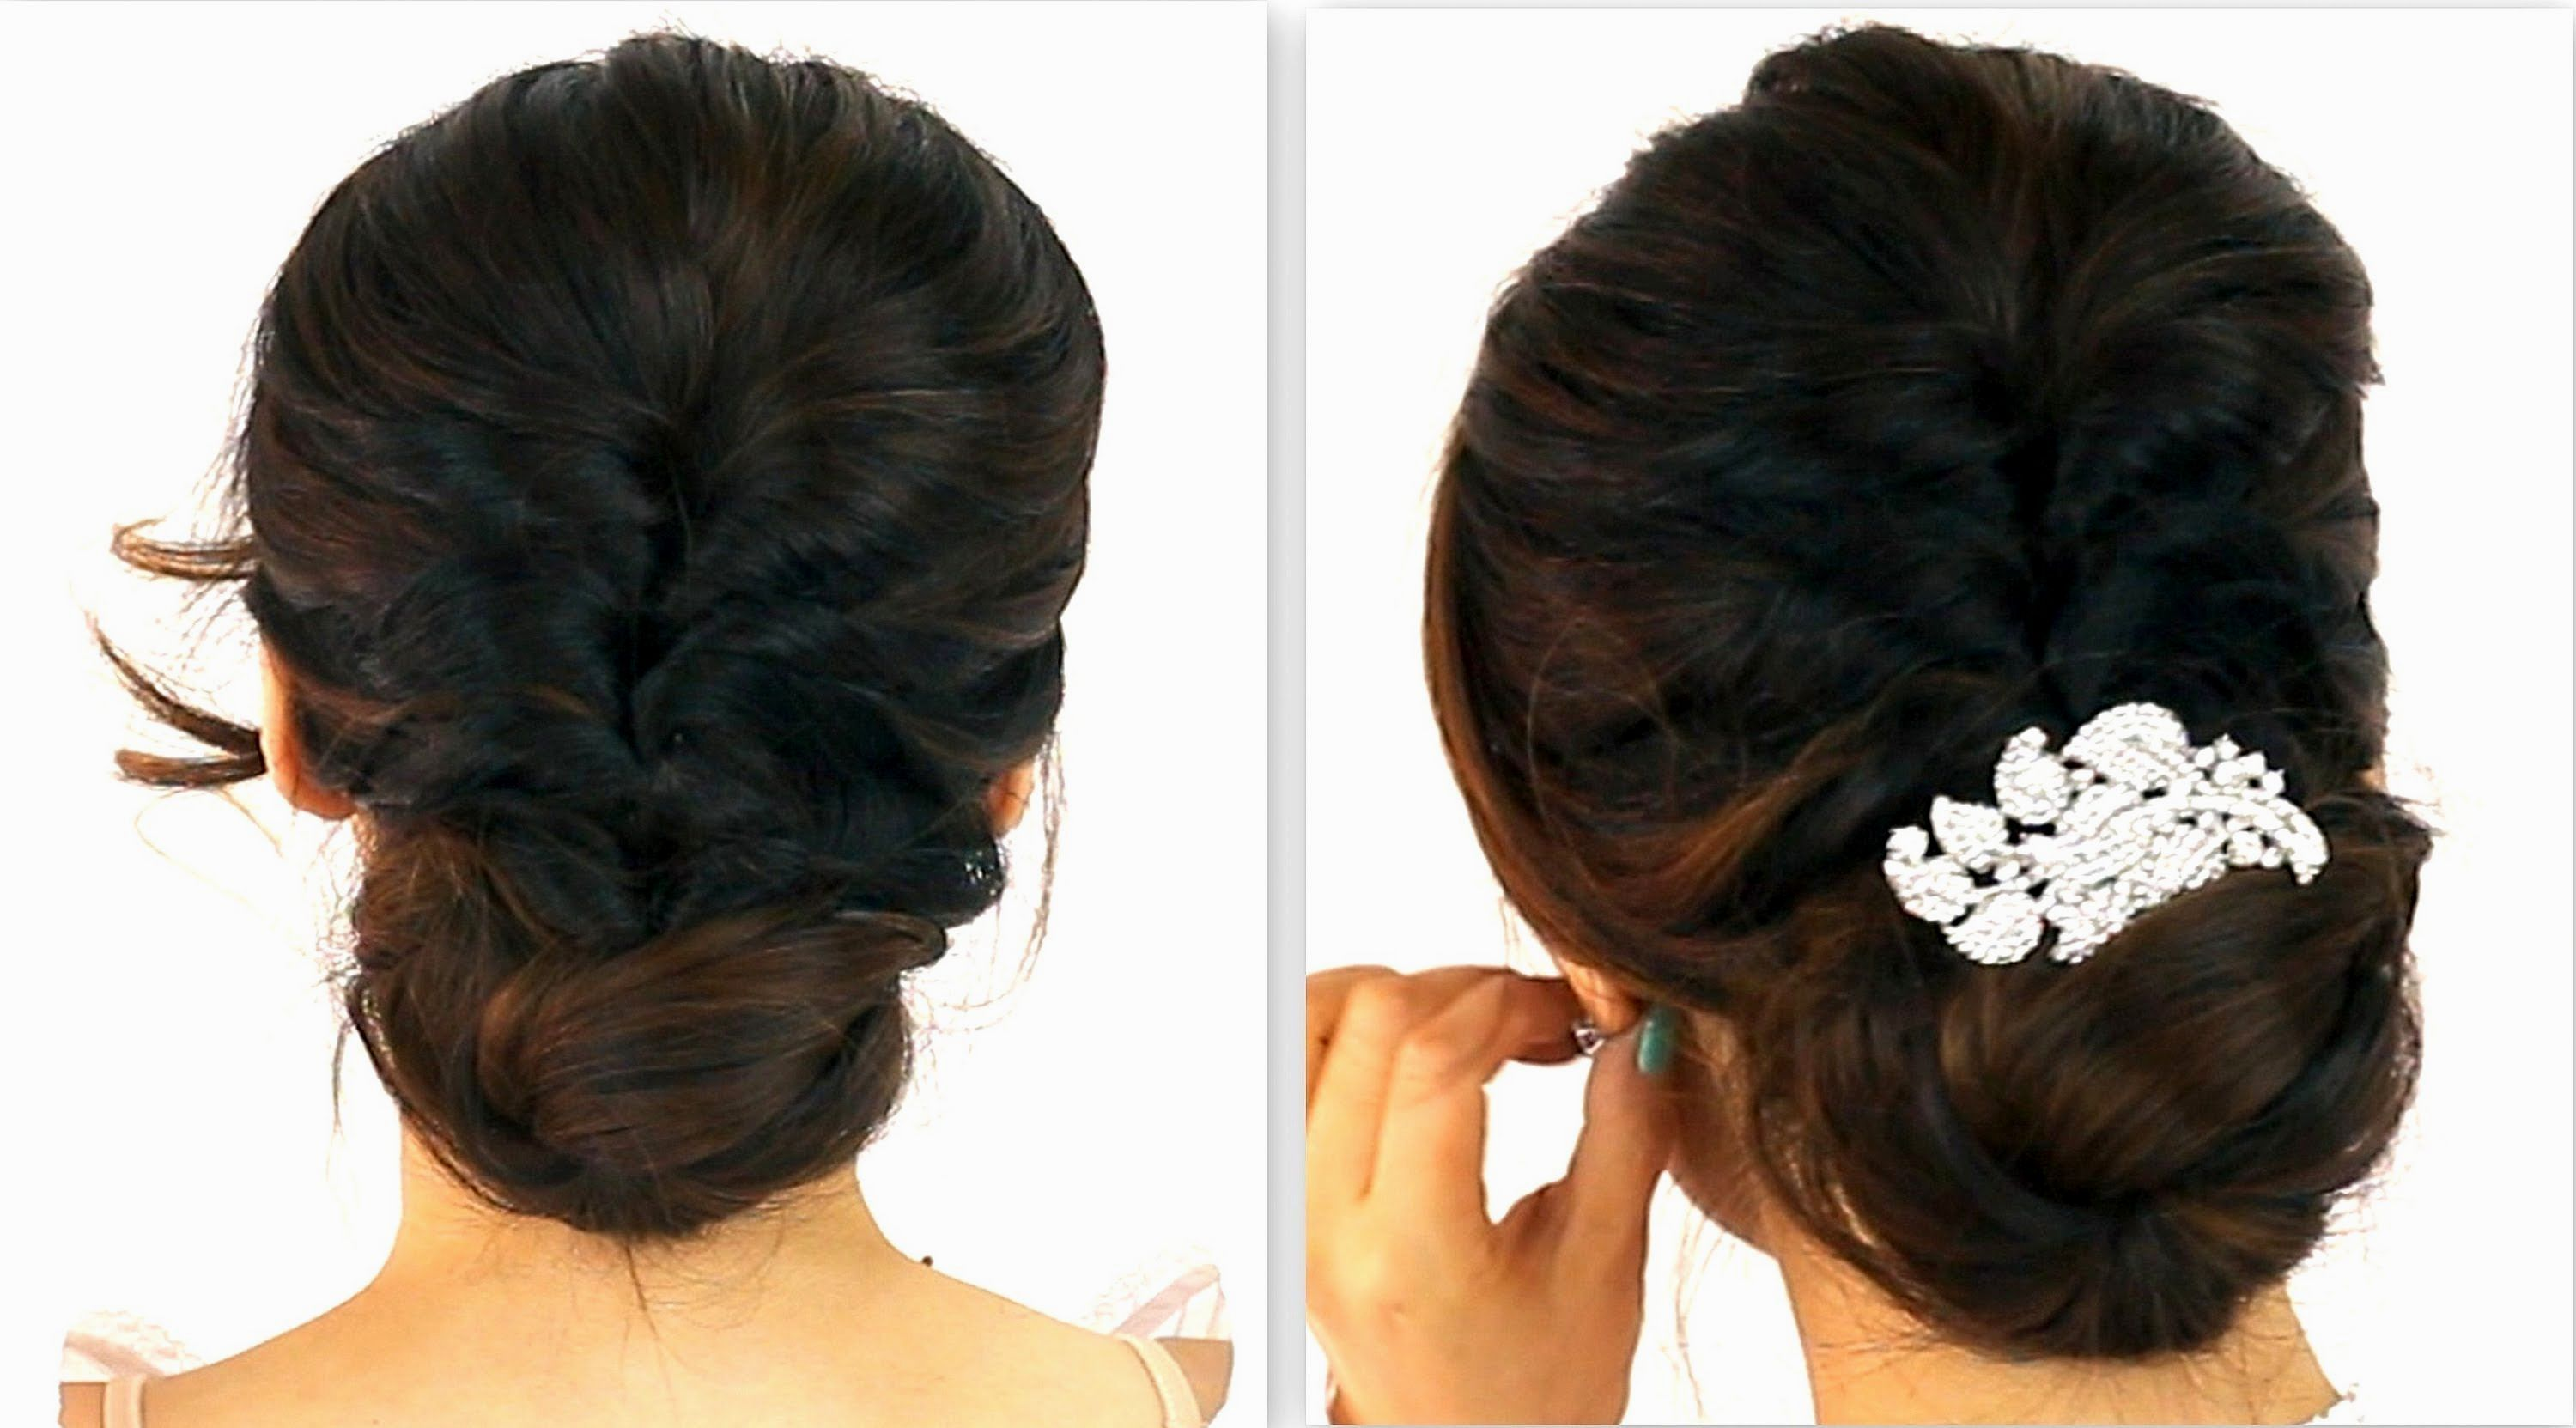 Indian Wedding Hairstyles For Short Hair Google Search Long Hair Styles Hair Styles Long Hair Ponytail